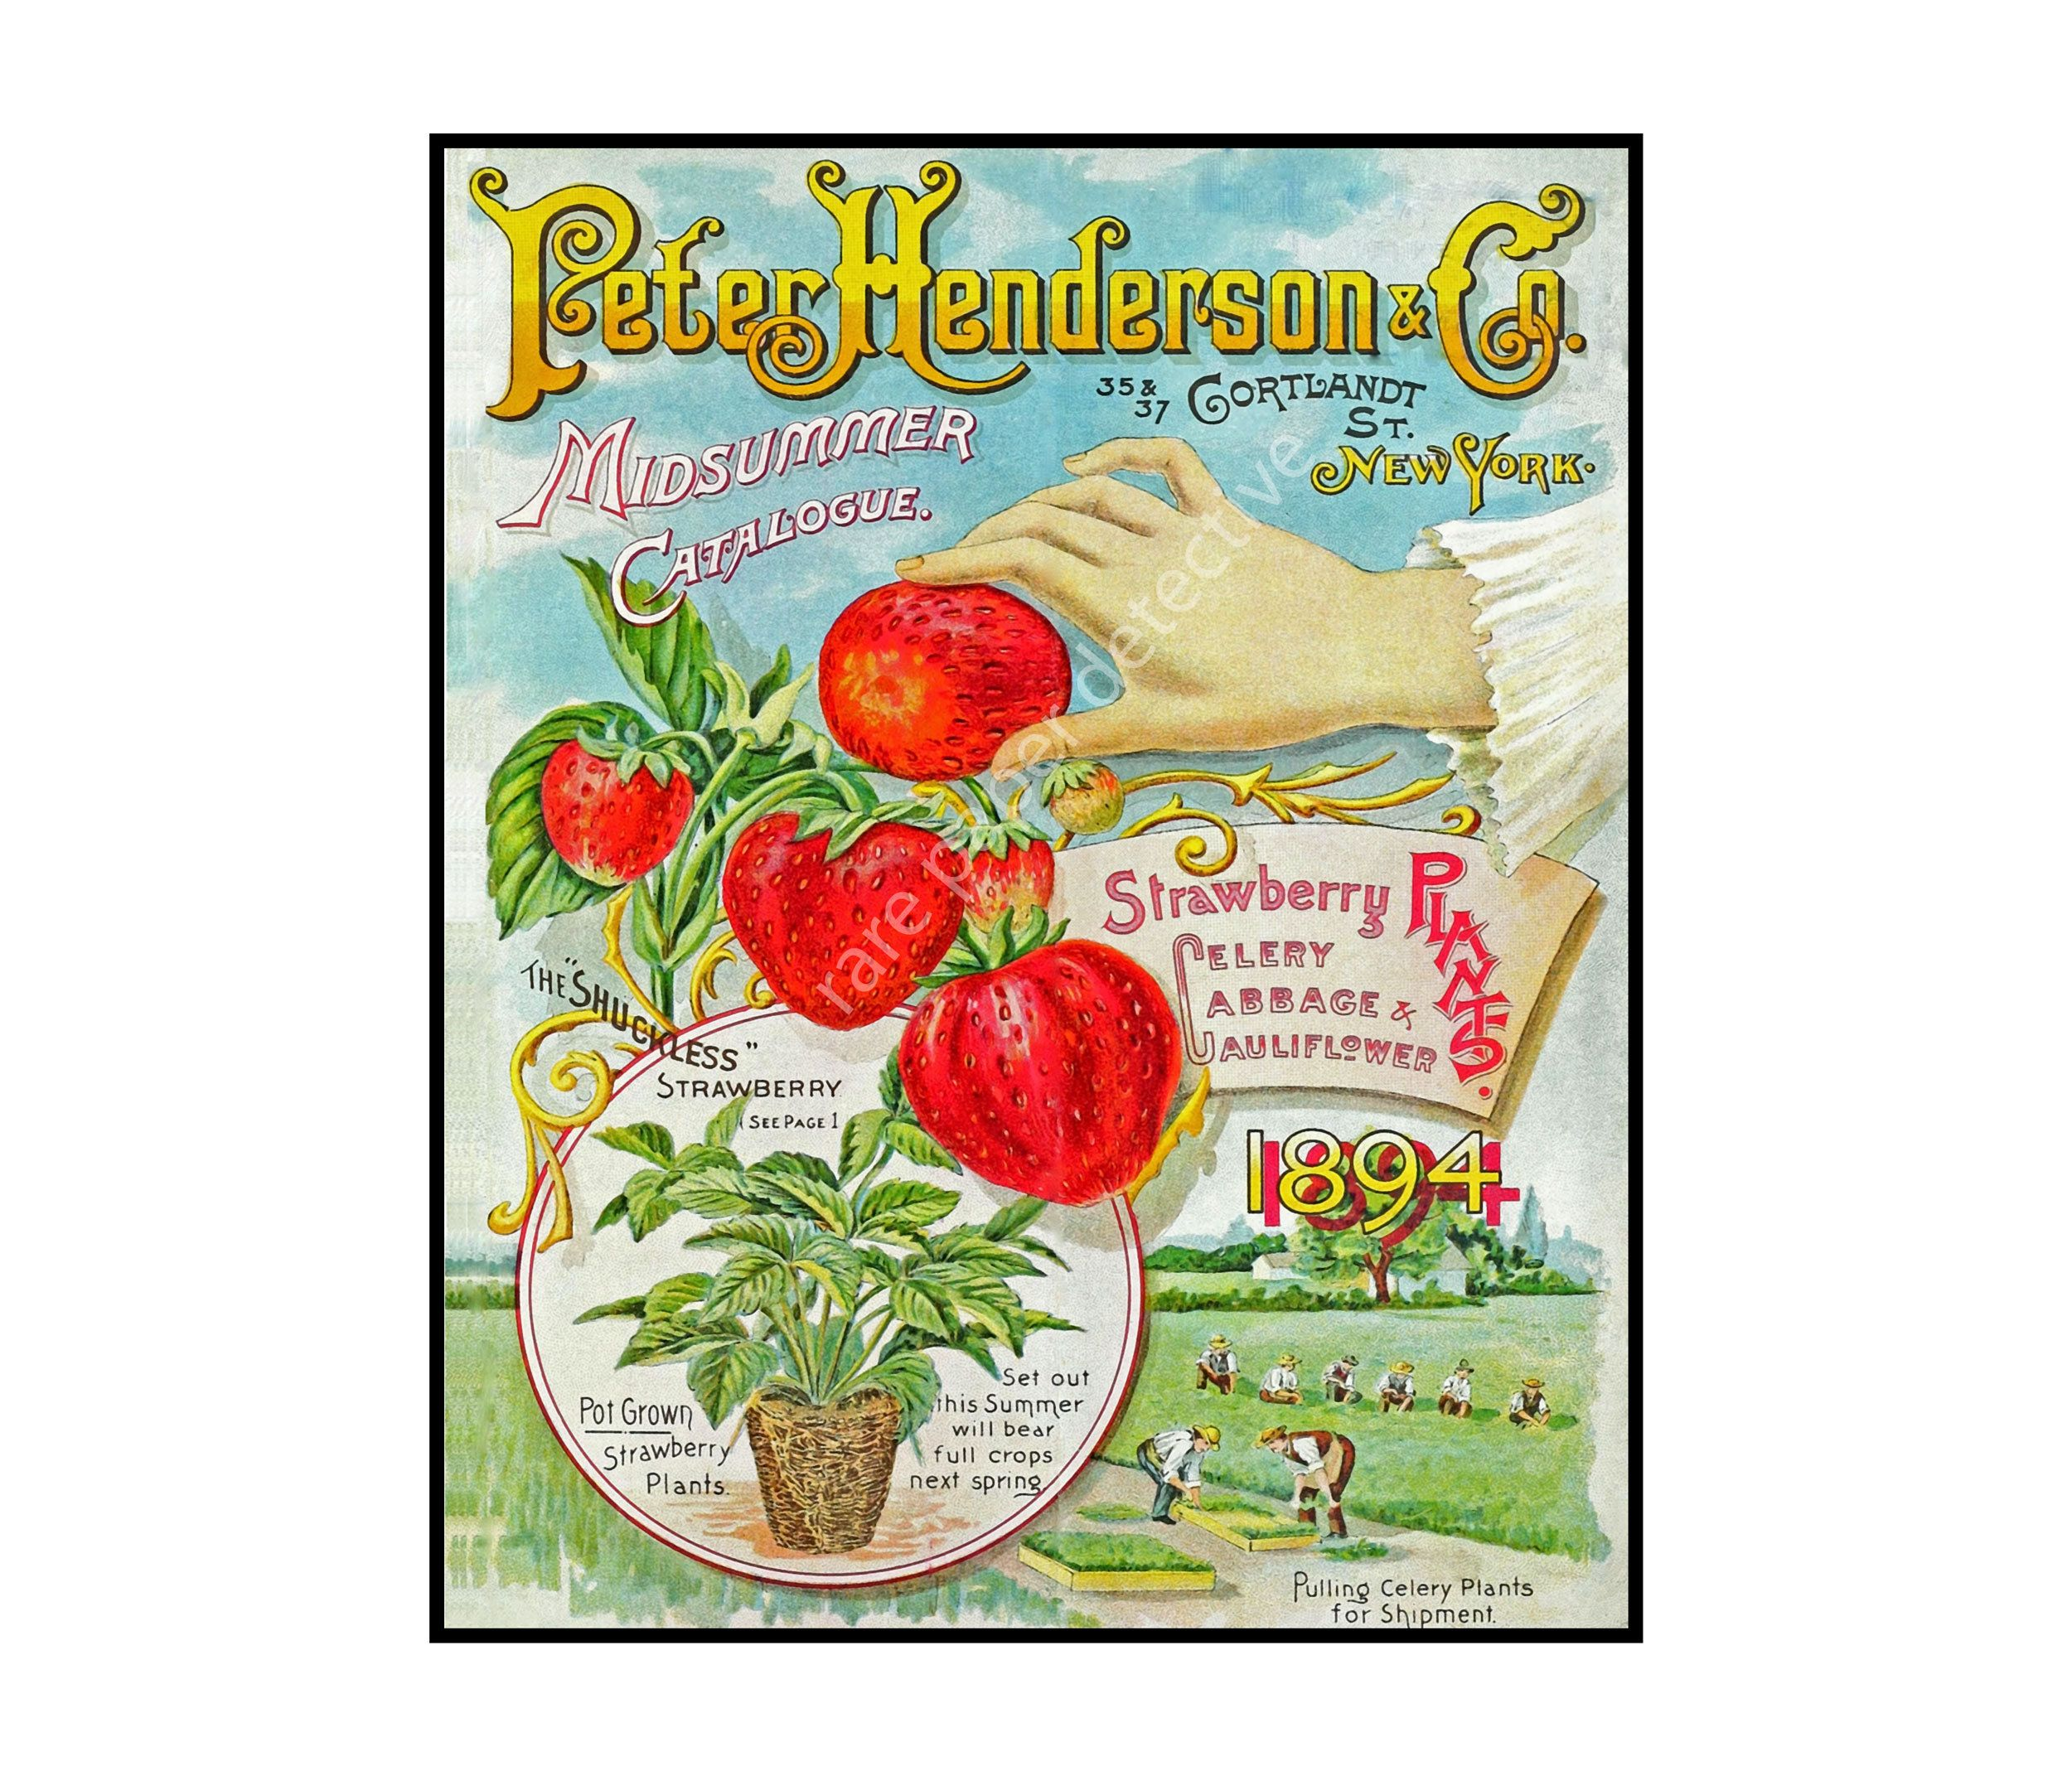 Pin on Garden & Farm Decor Prints, Seed Pack & Catalog Art